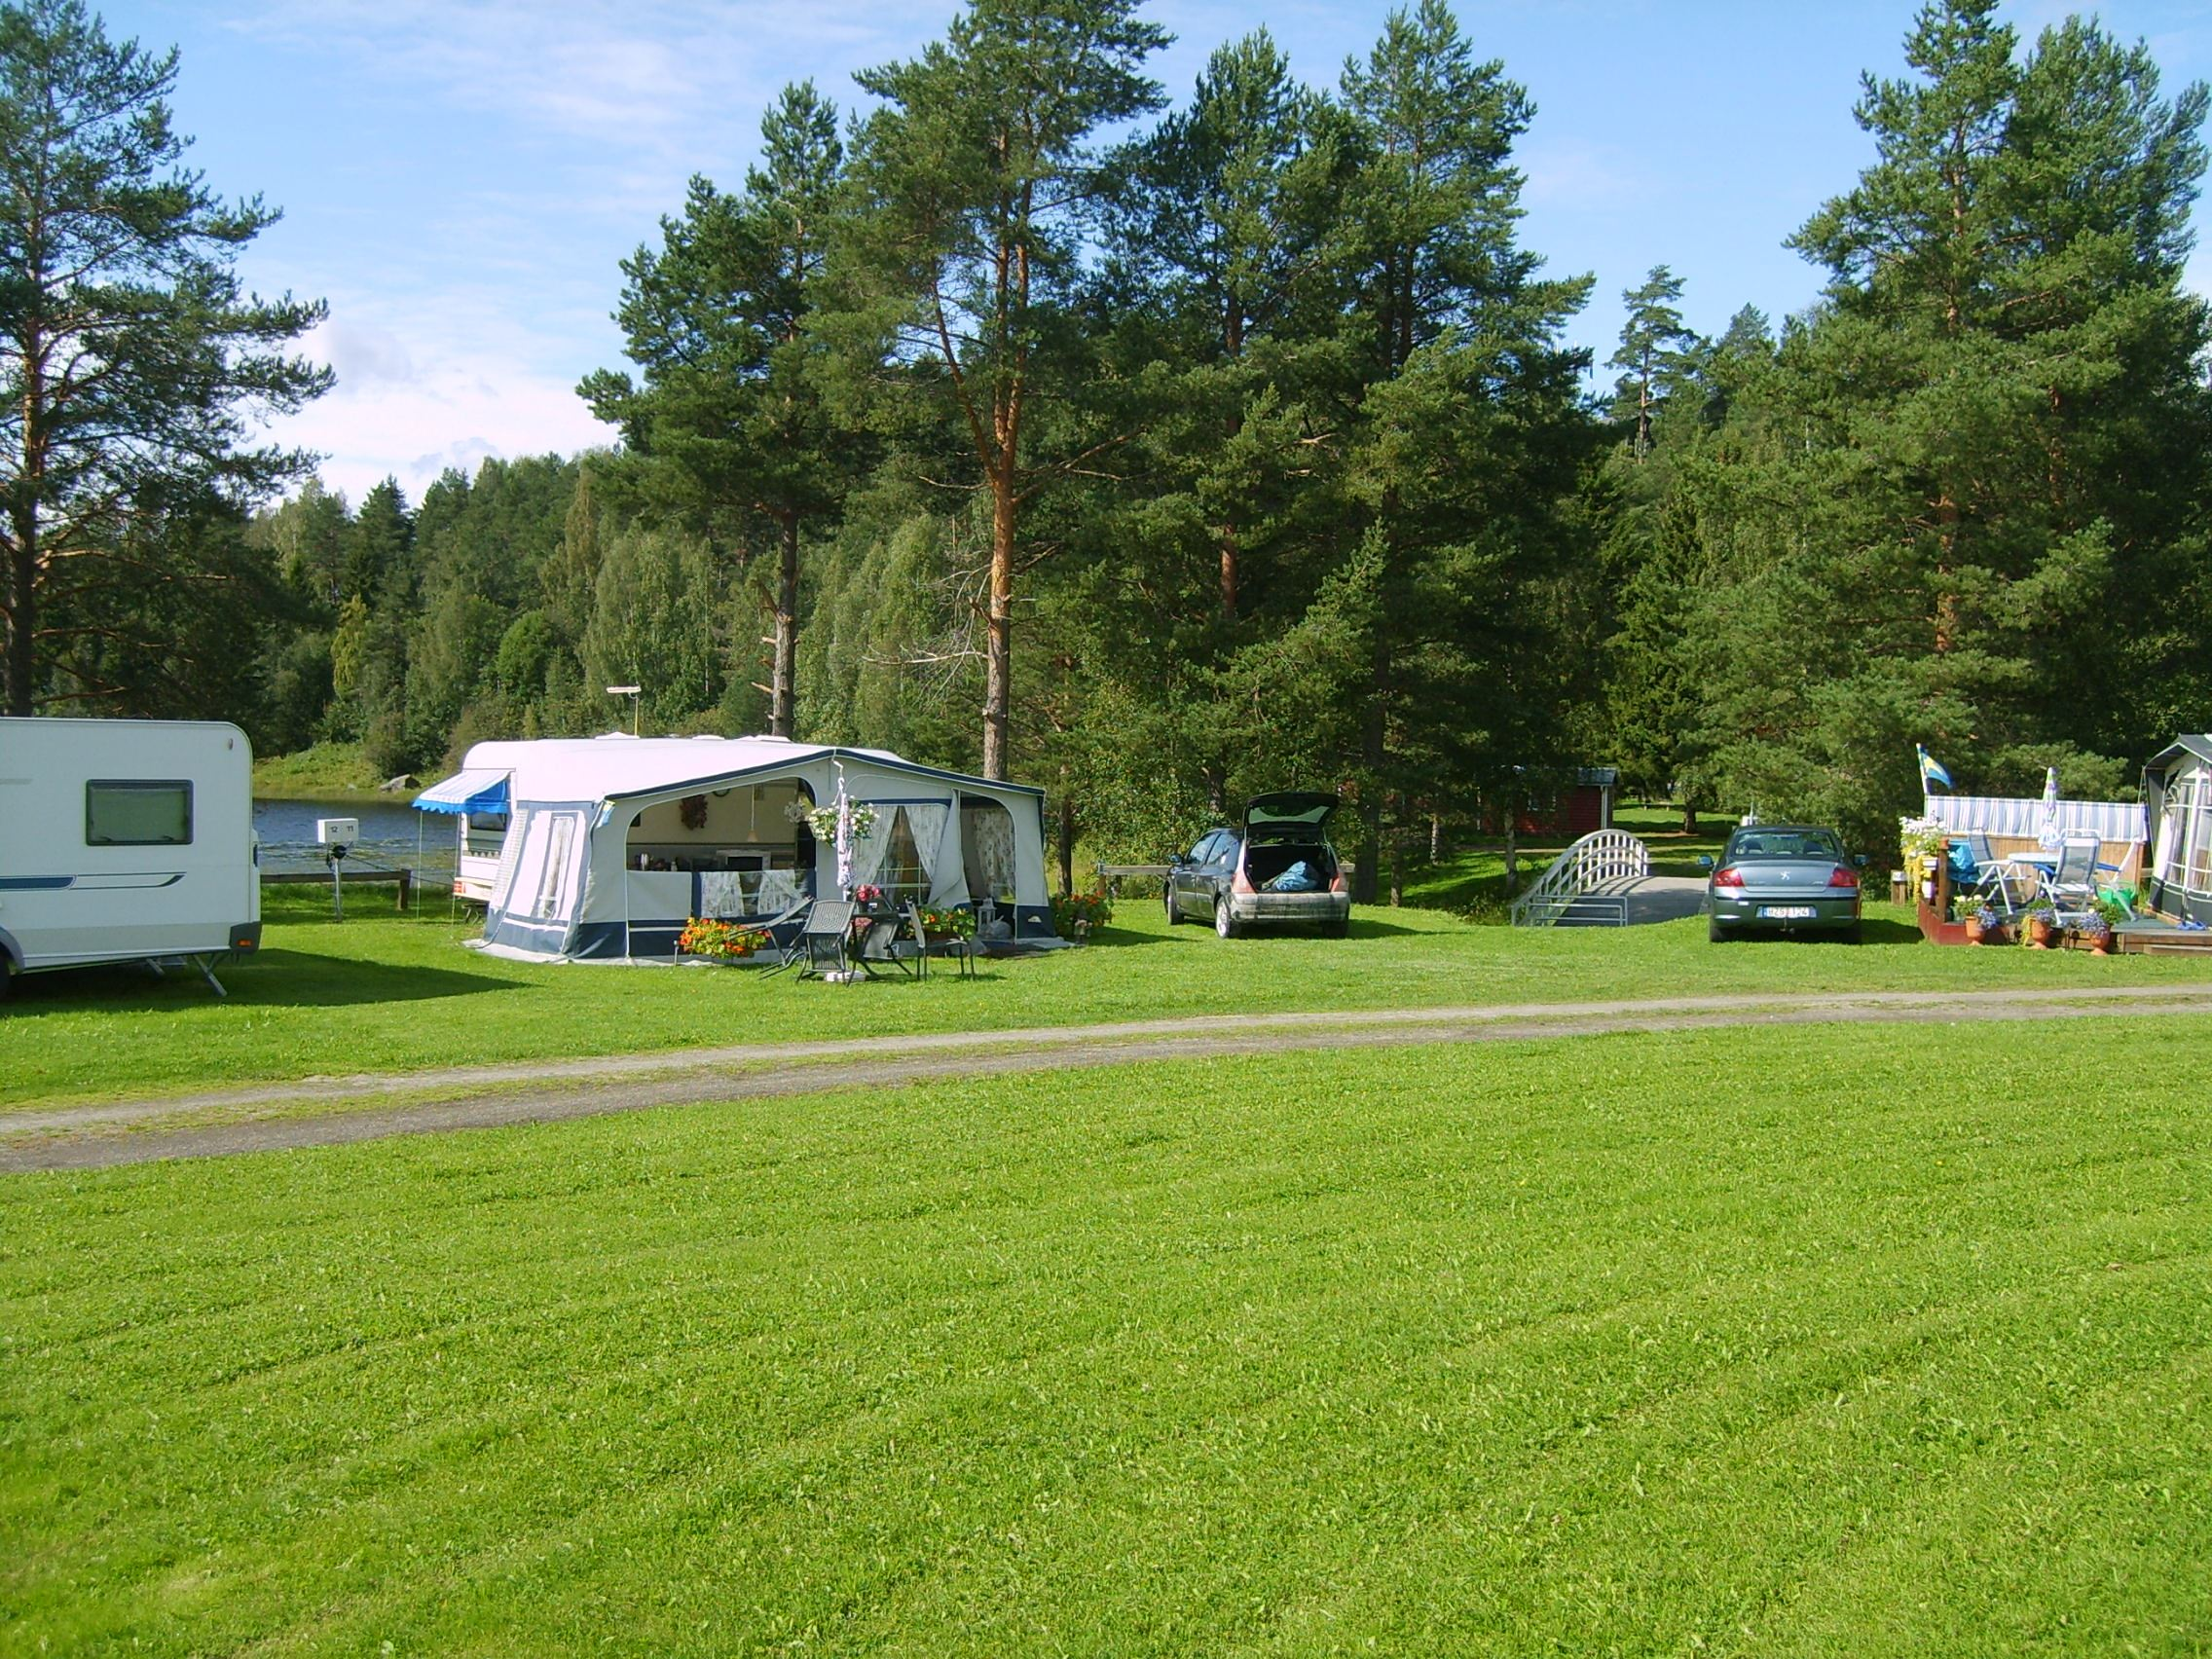 Stöde Camping caravan- and tentpitch